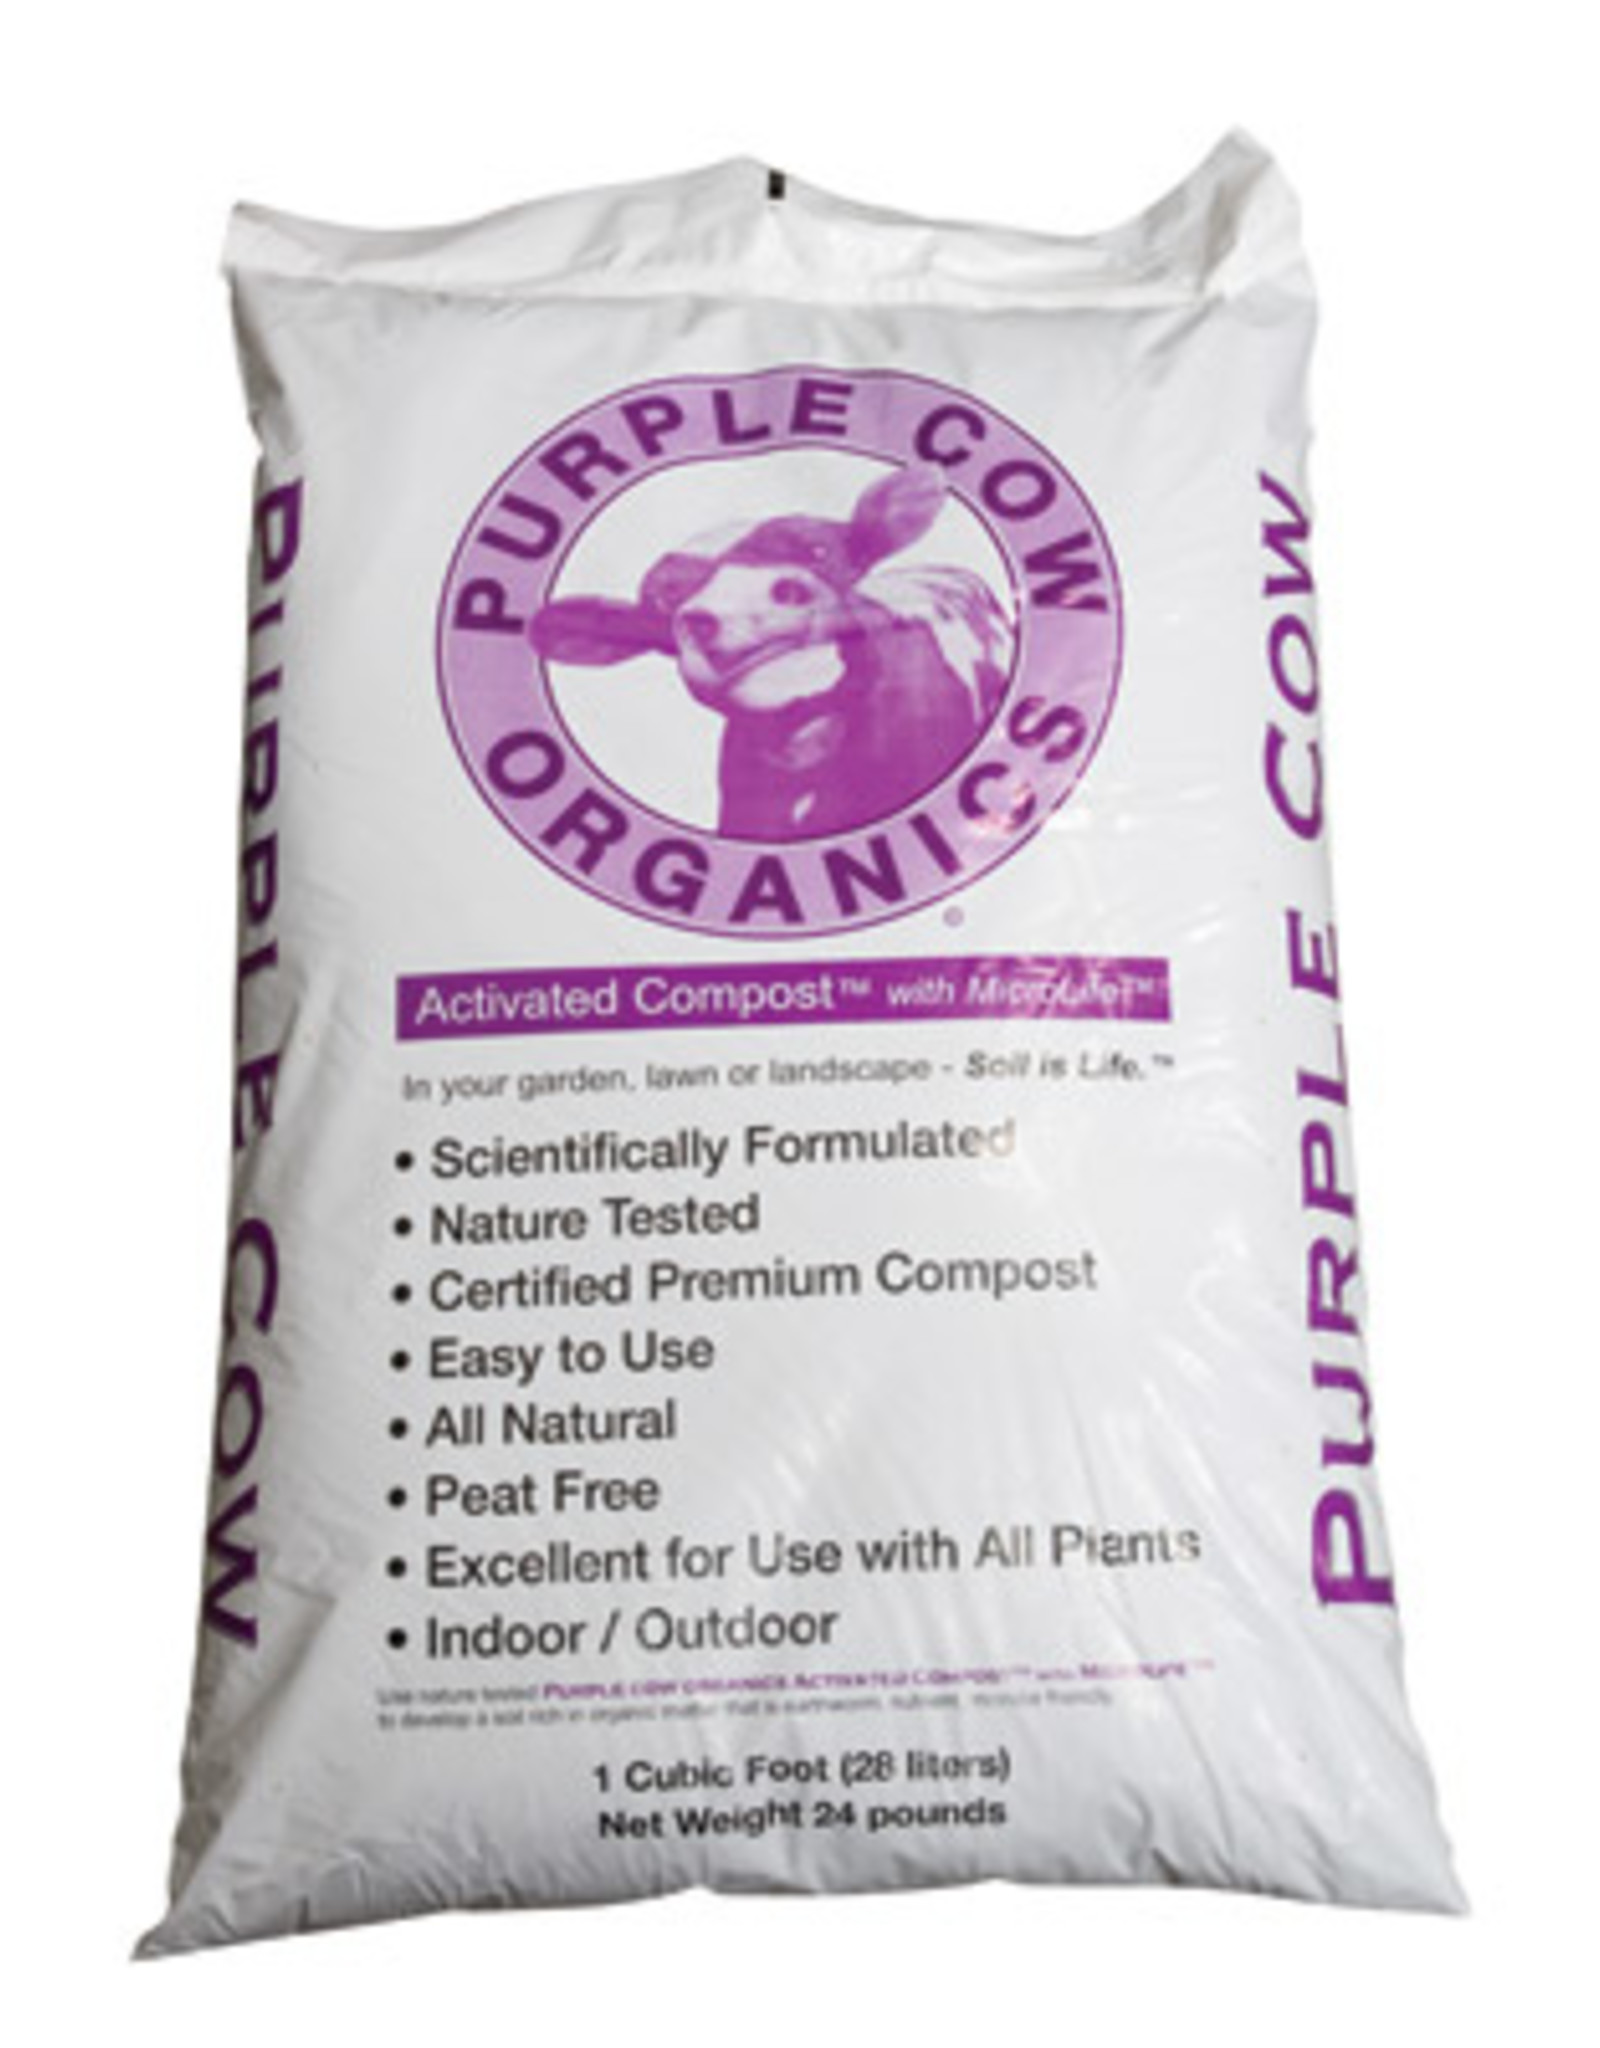 Purple Cow Organics Activated Compost 1 cu ft Bag